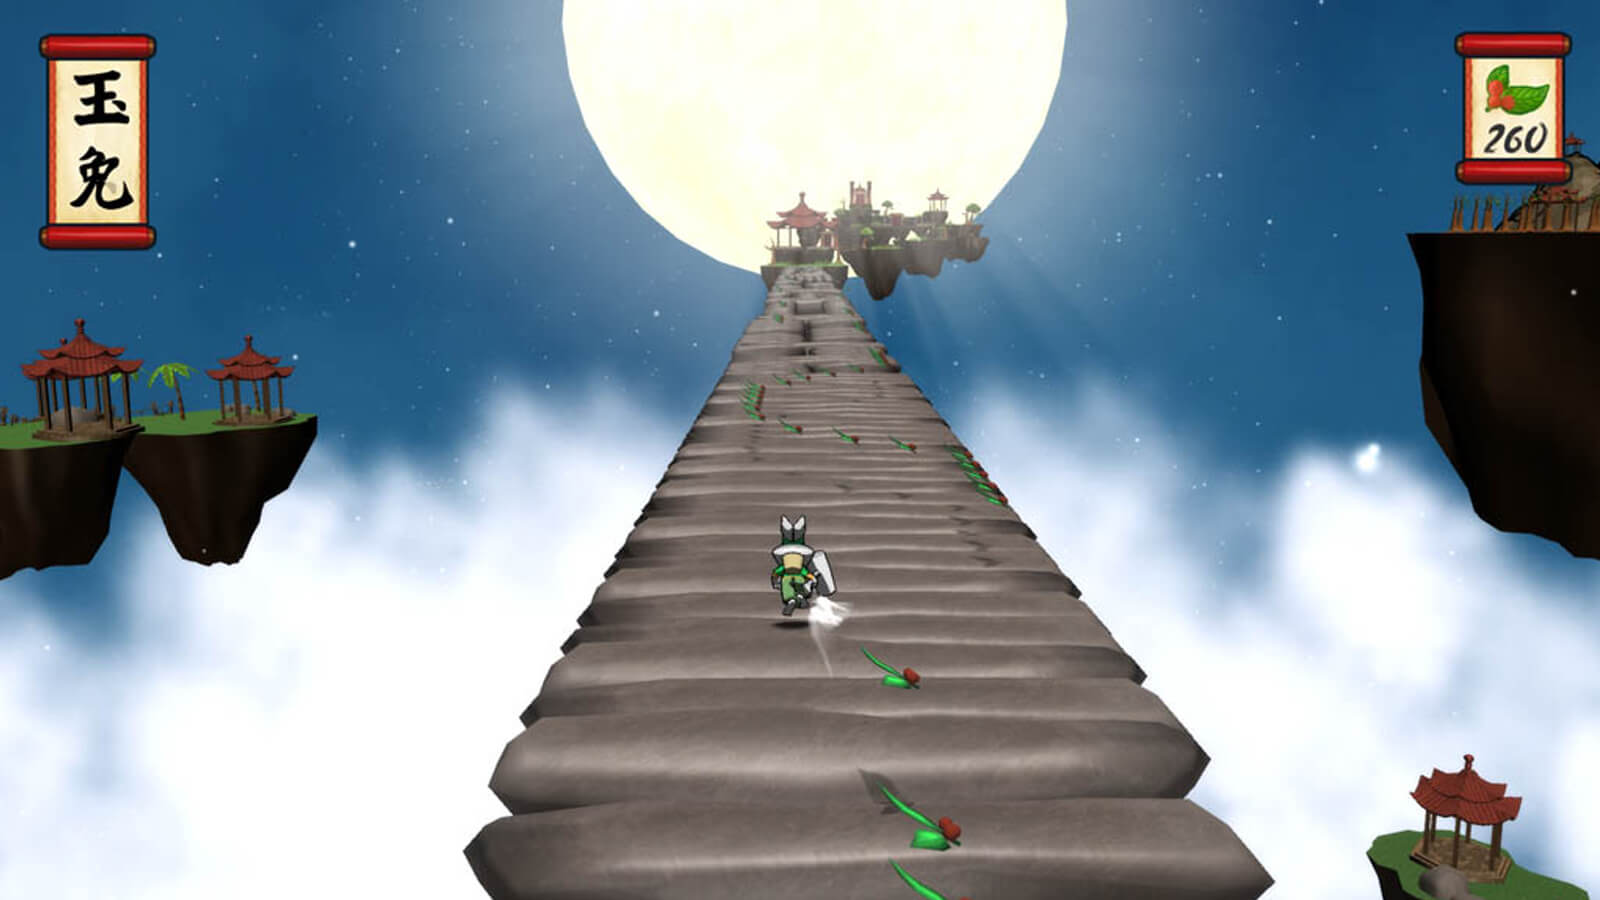 The moon rabbit runs up a path toward the moon and several pagodas in the distance